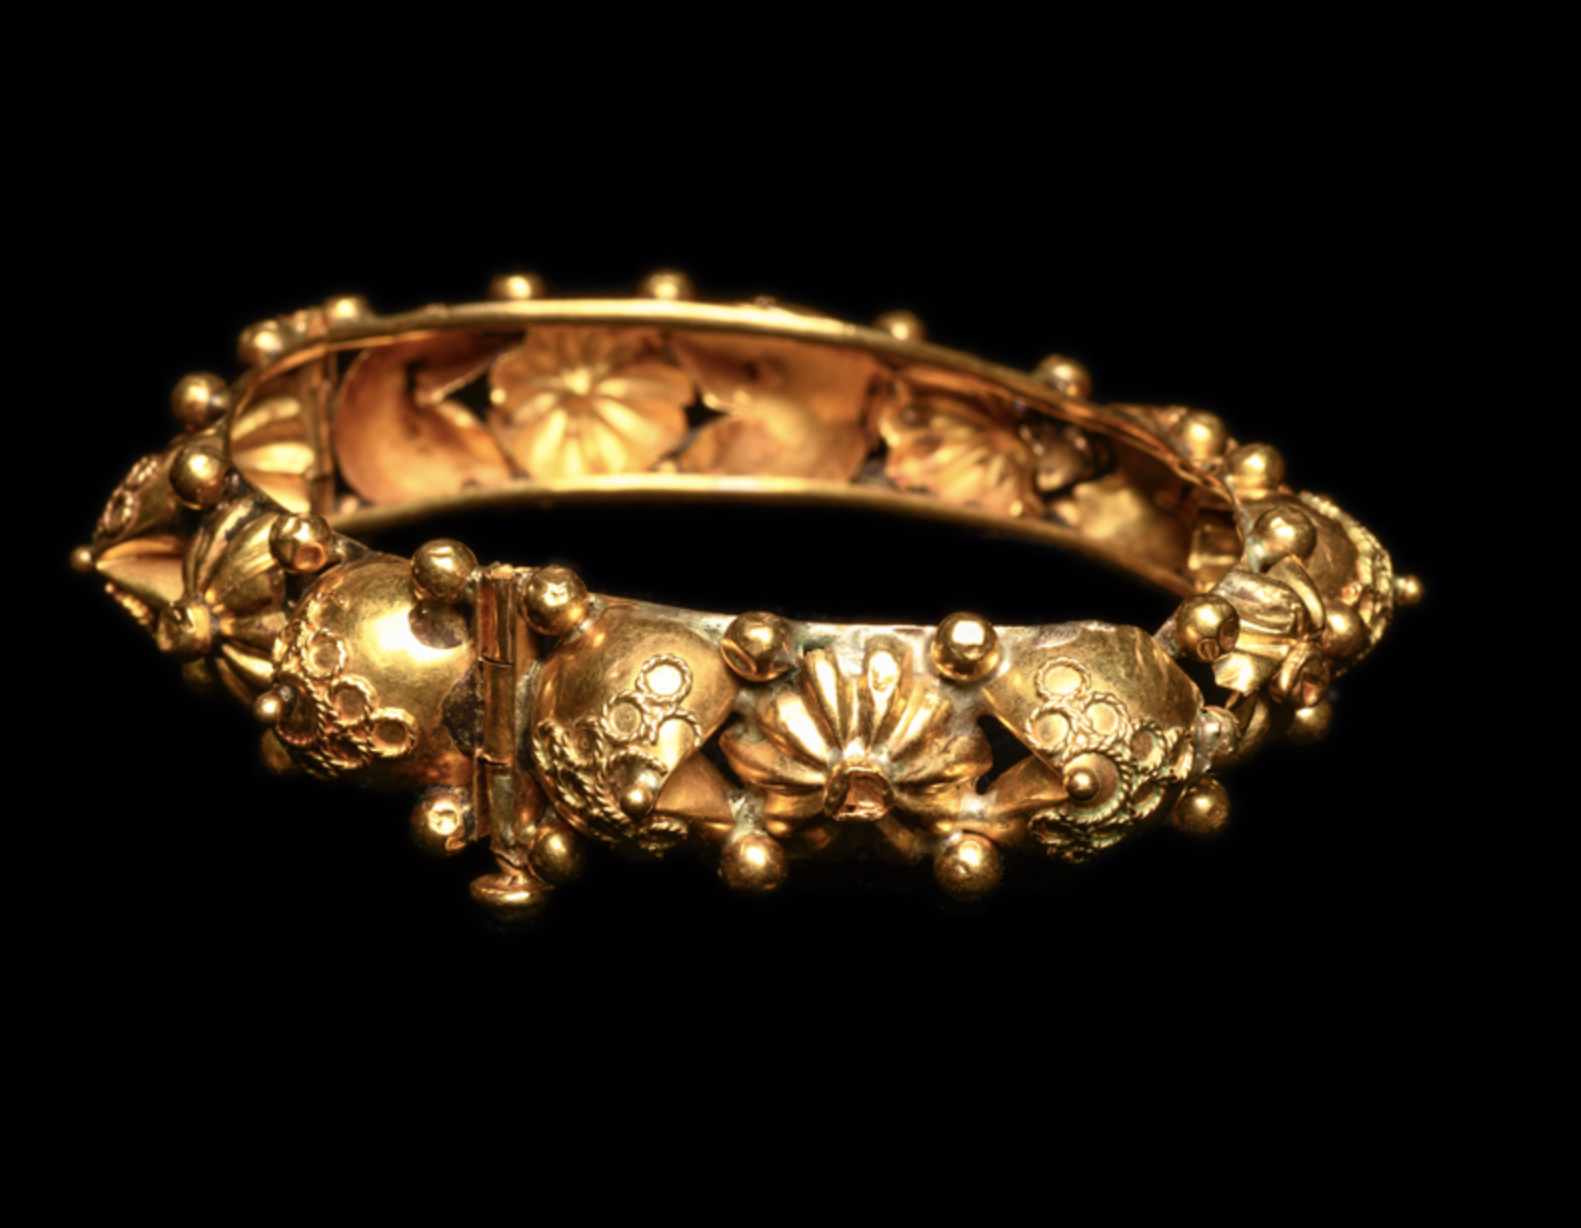 Ancient Byzantine Gold Bracelet Ca. 7th-12th century A.D. Medieval Jewelry 2